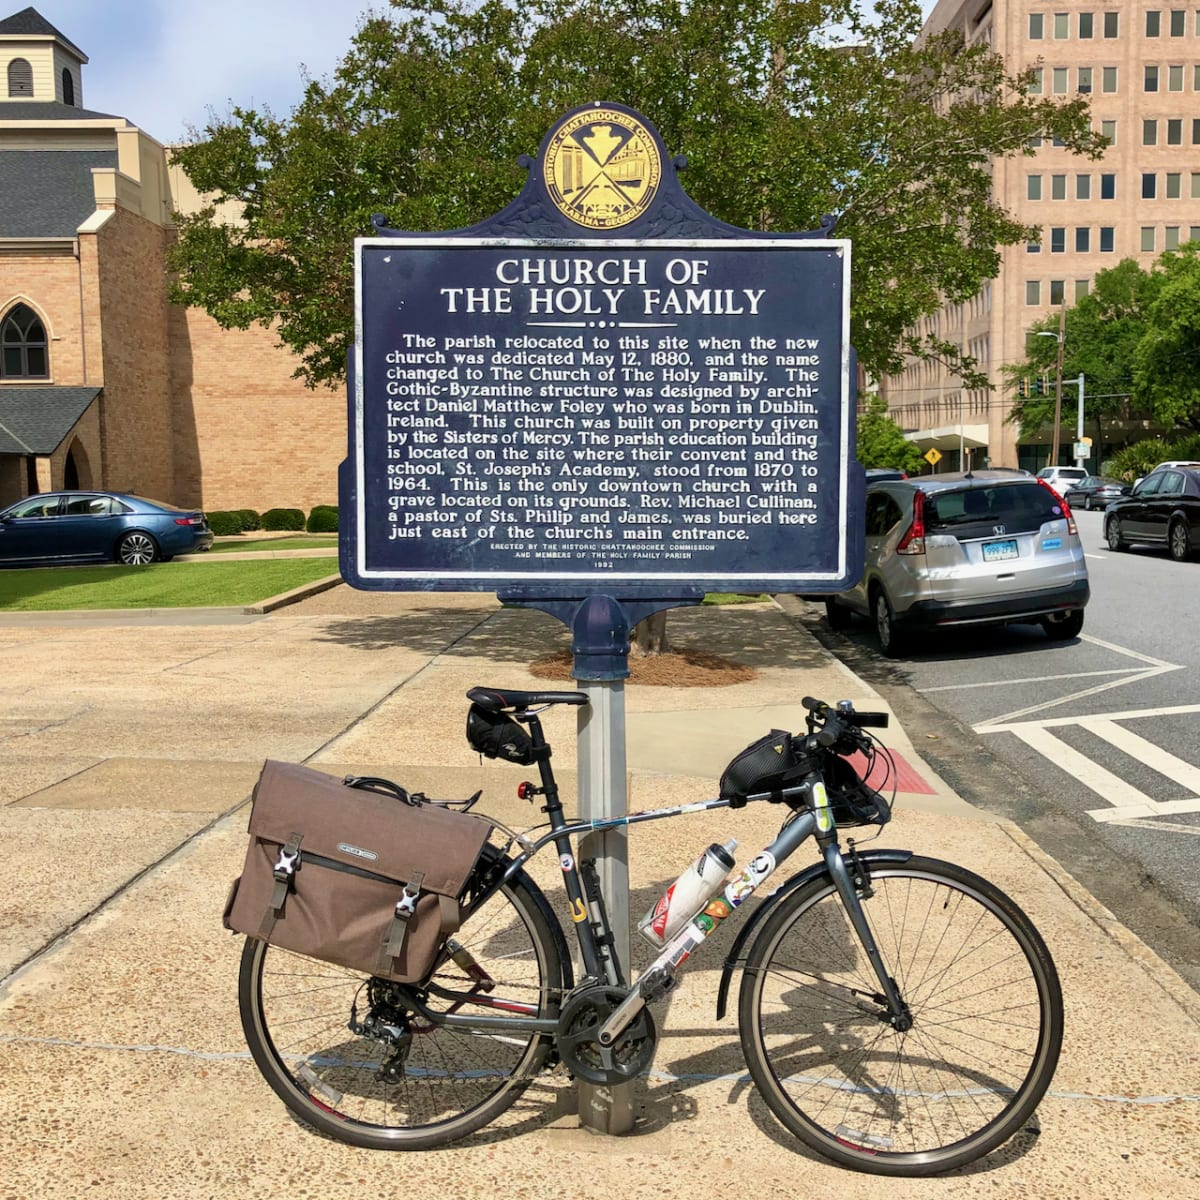 A photo of my bicycle in front of the church's historic marker.